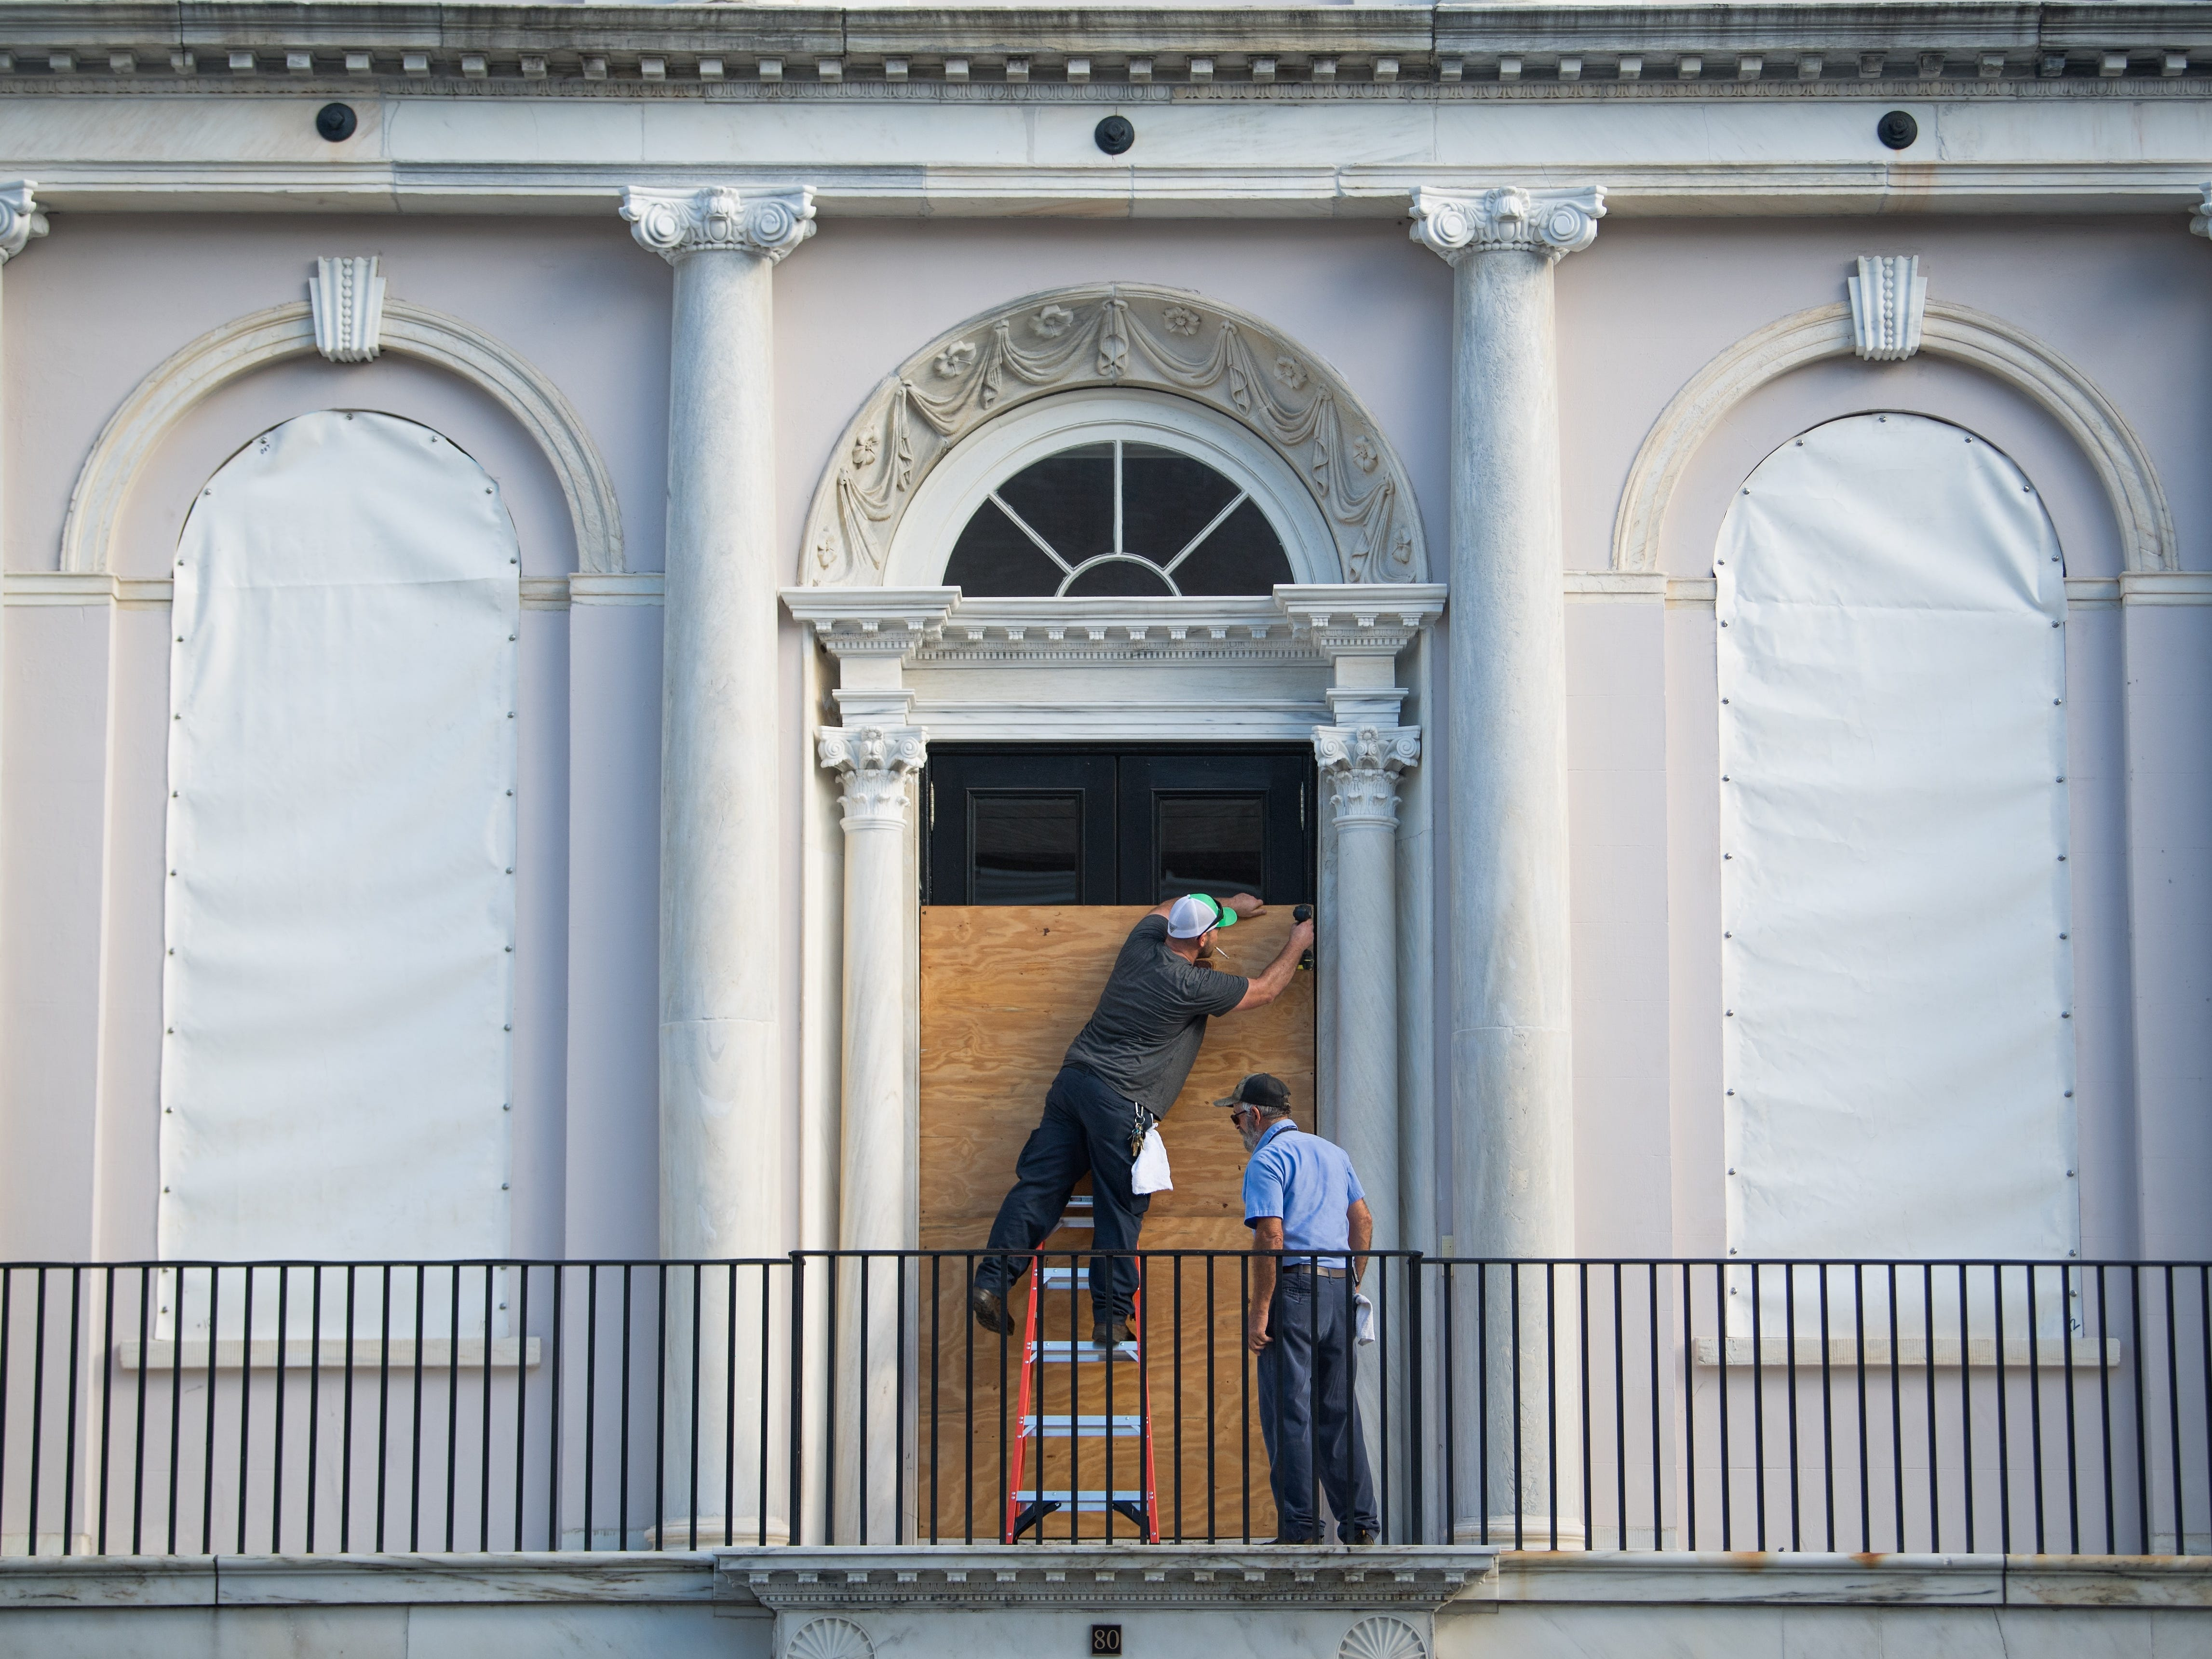 9/12/18 8:54:42 AM -- Charleston, NC, U.S.A  -- Workers prepare Charleston City Hall for the coming storm before Hurricane Florence makes landfall along the East Coast.